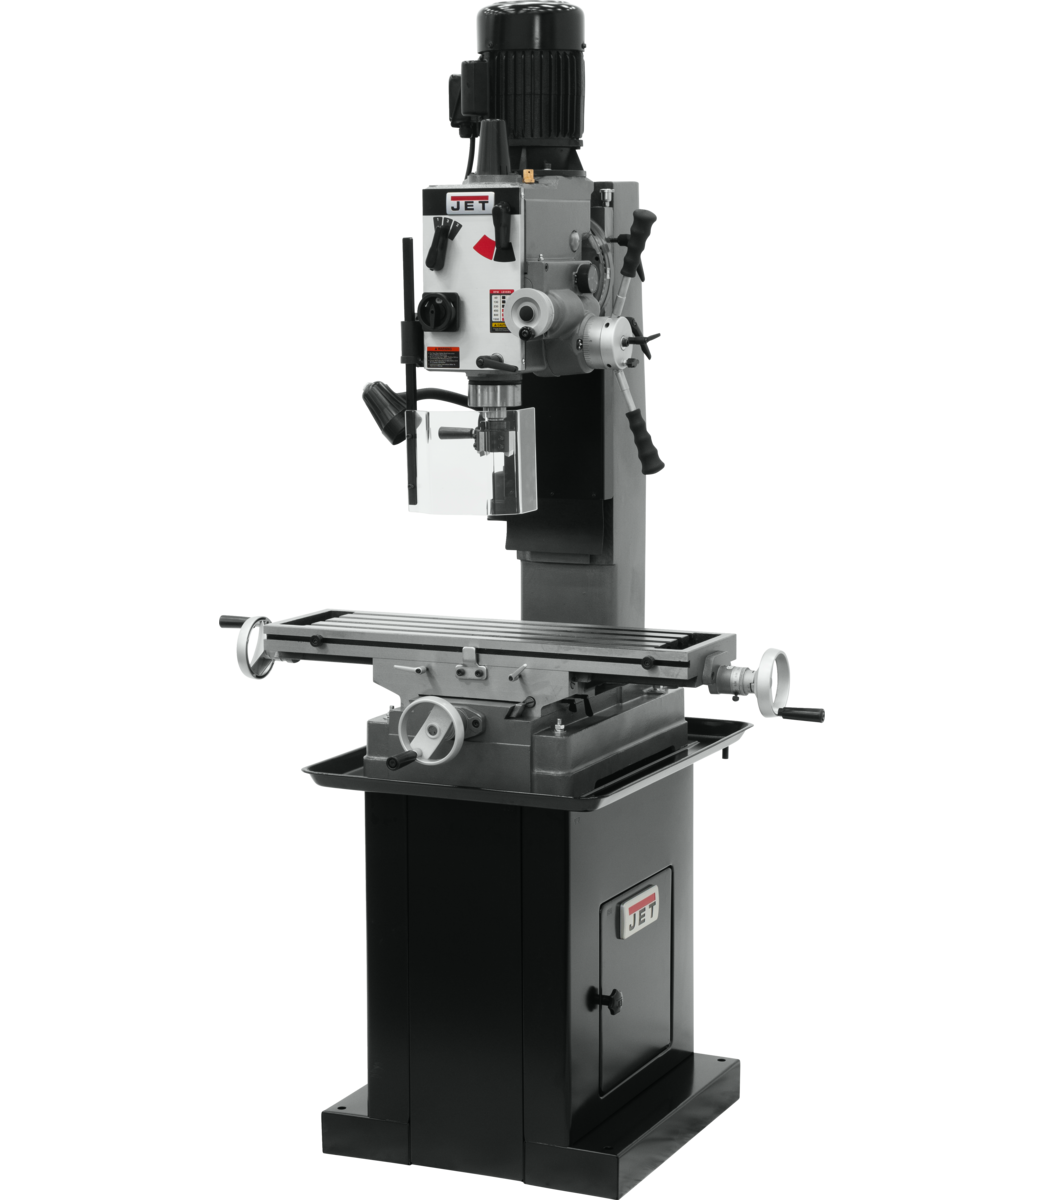 JMD-45GHPF Geared Head Square Column Mill/Drill with Power Downfeed with DP500 2-Axis DRO & X-Axis Powerfeed